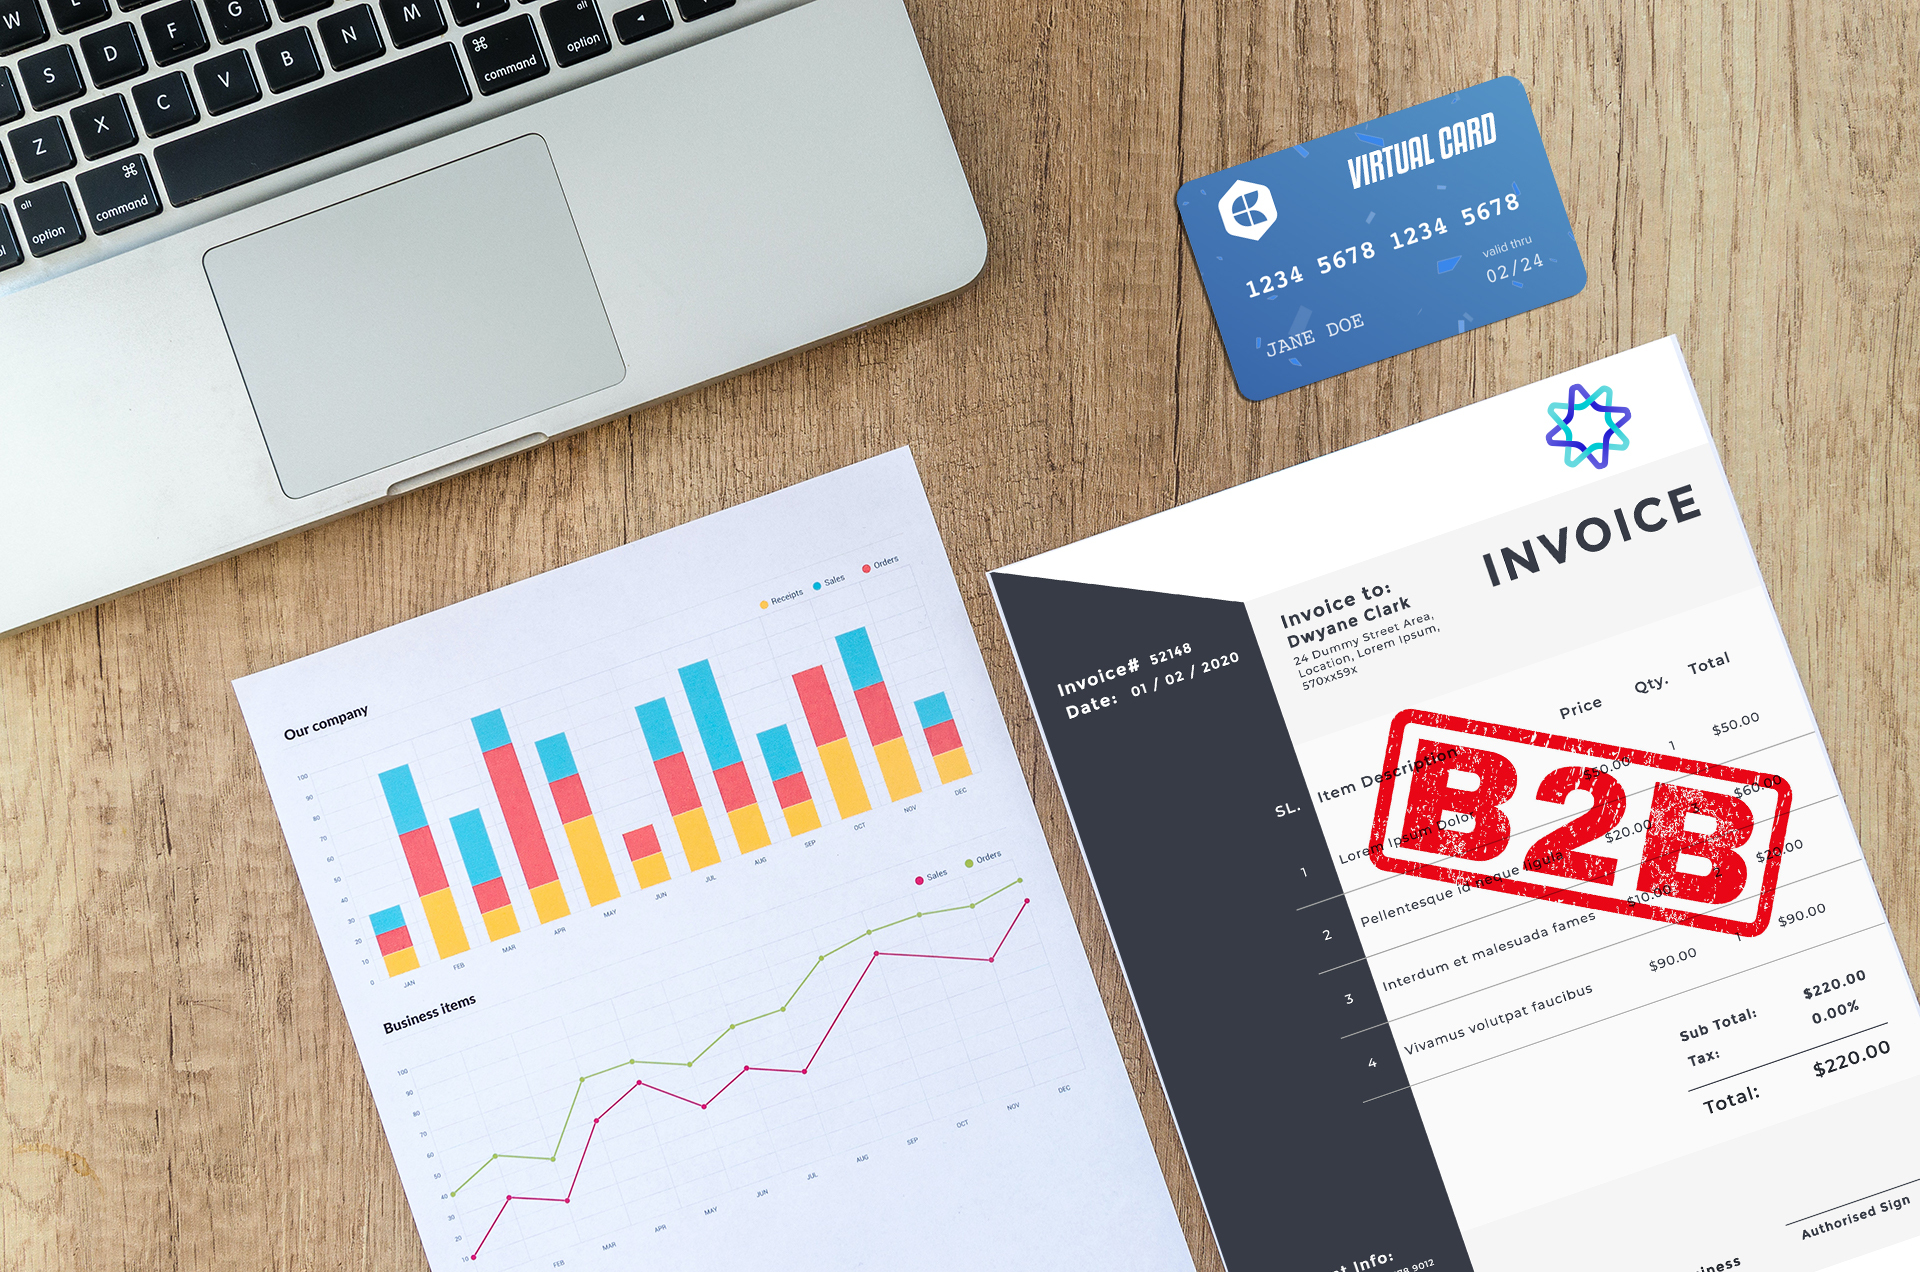 3 B2B Payment Trends That Will Grow Your Business